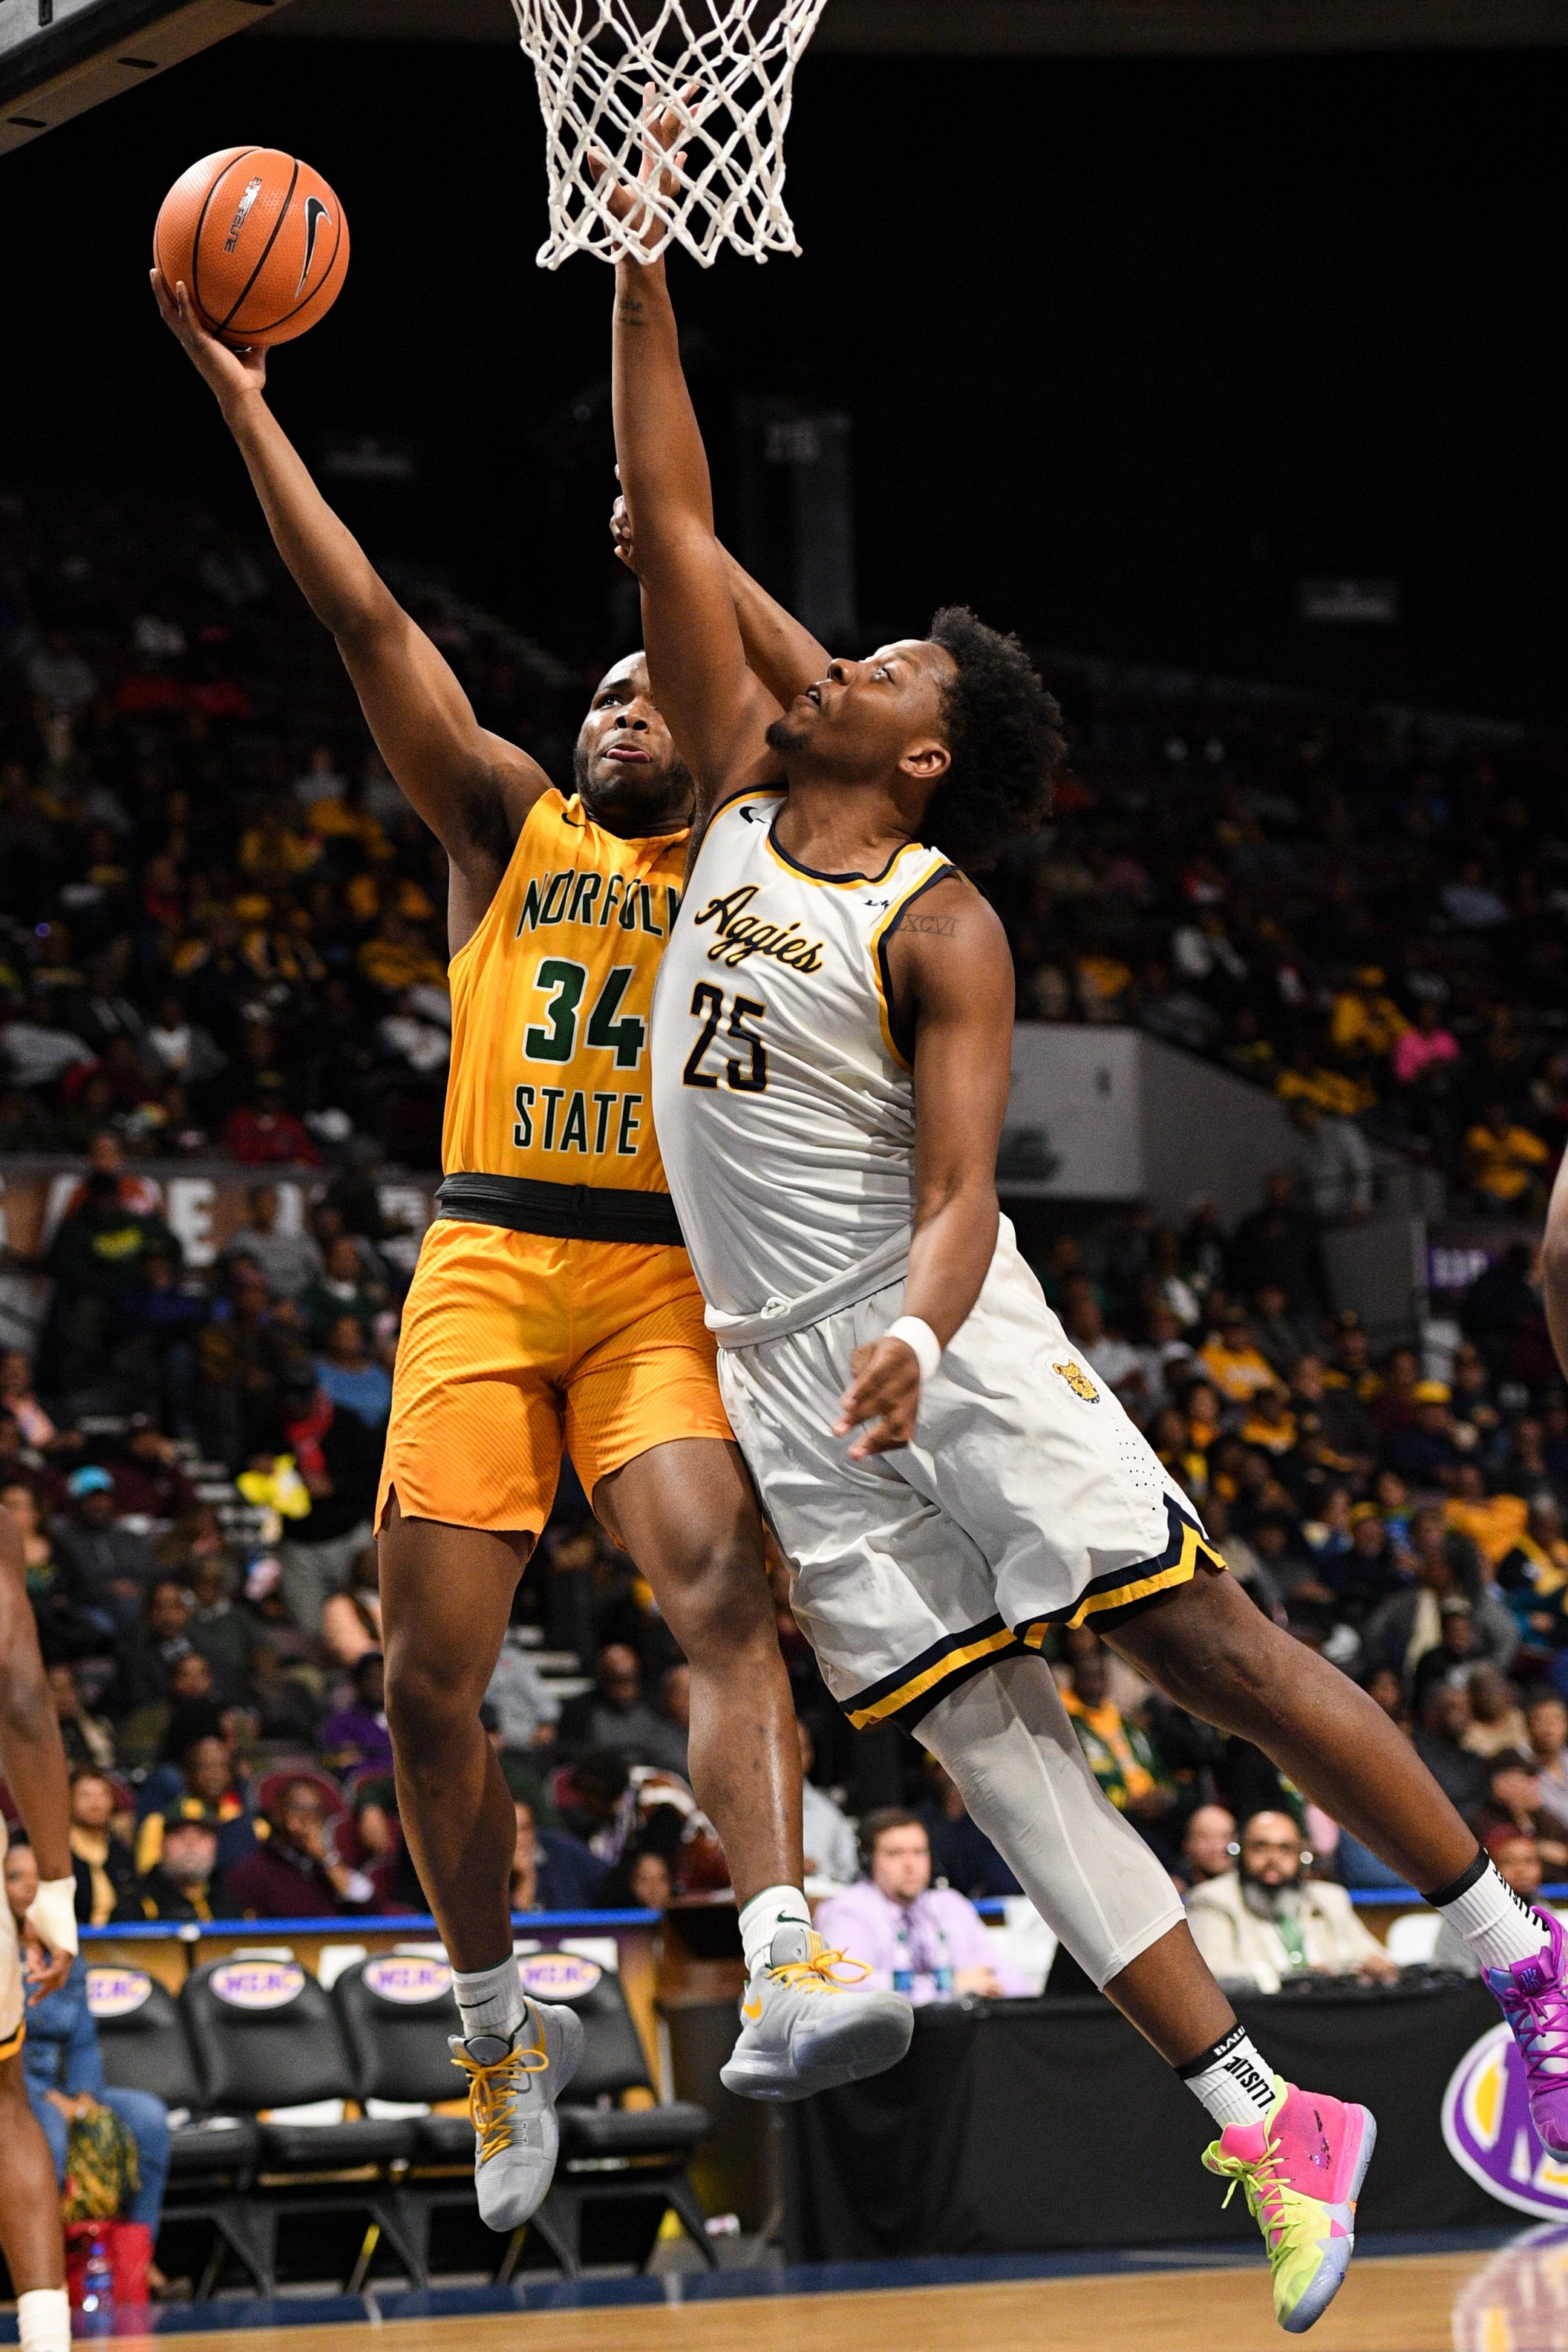 Norfolk State Spartans guard Steven Whitley goes up for a shot against North Carolina A&T Aggies forward Femi Olujobi during the Thursday, March 8, 2018 game held at Norfolk Scope Arena.